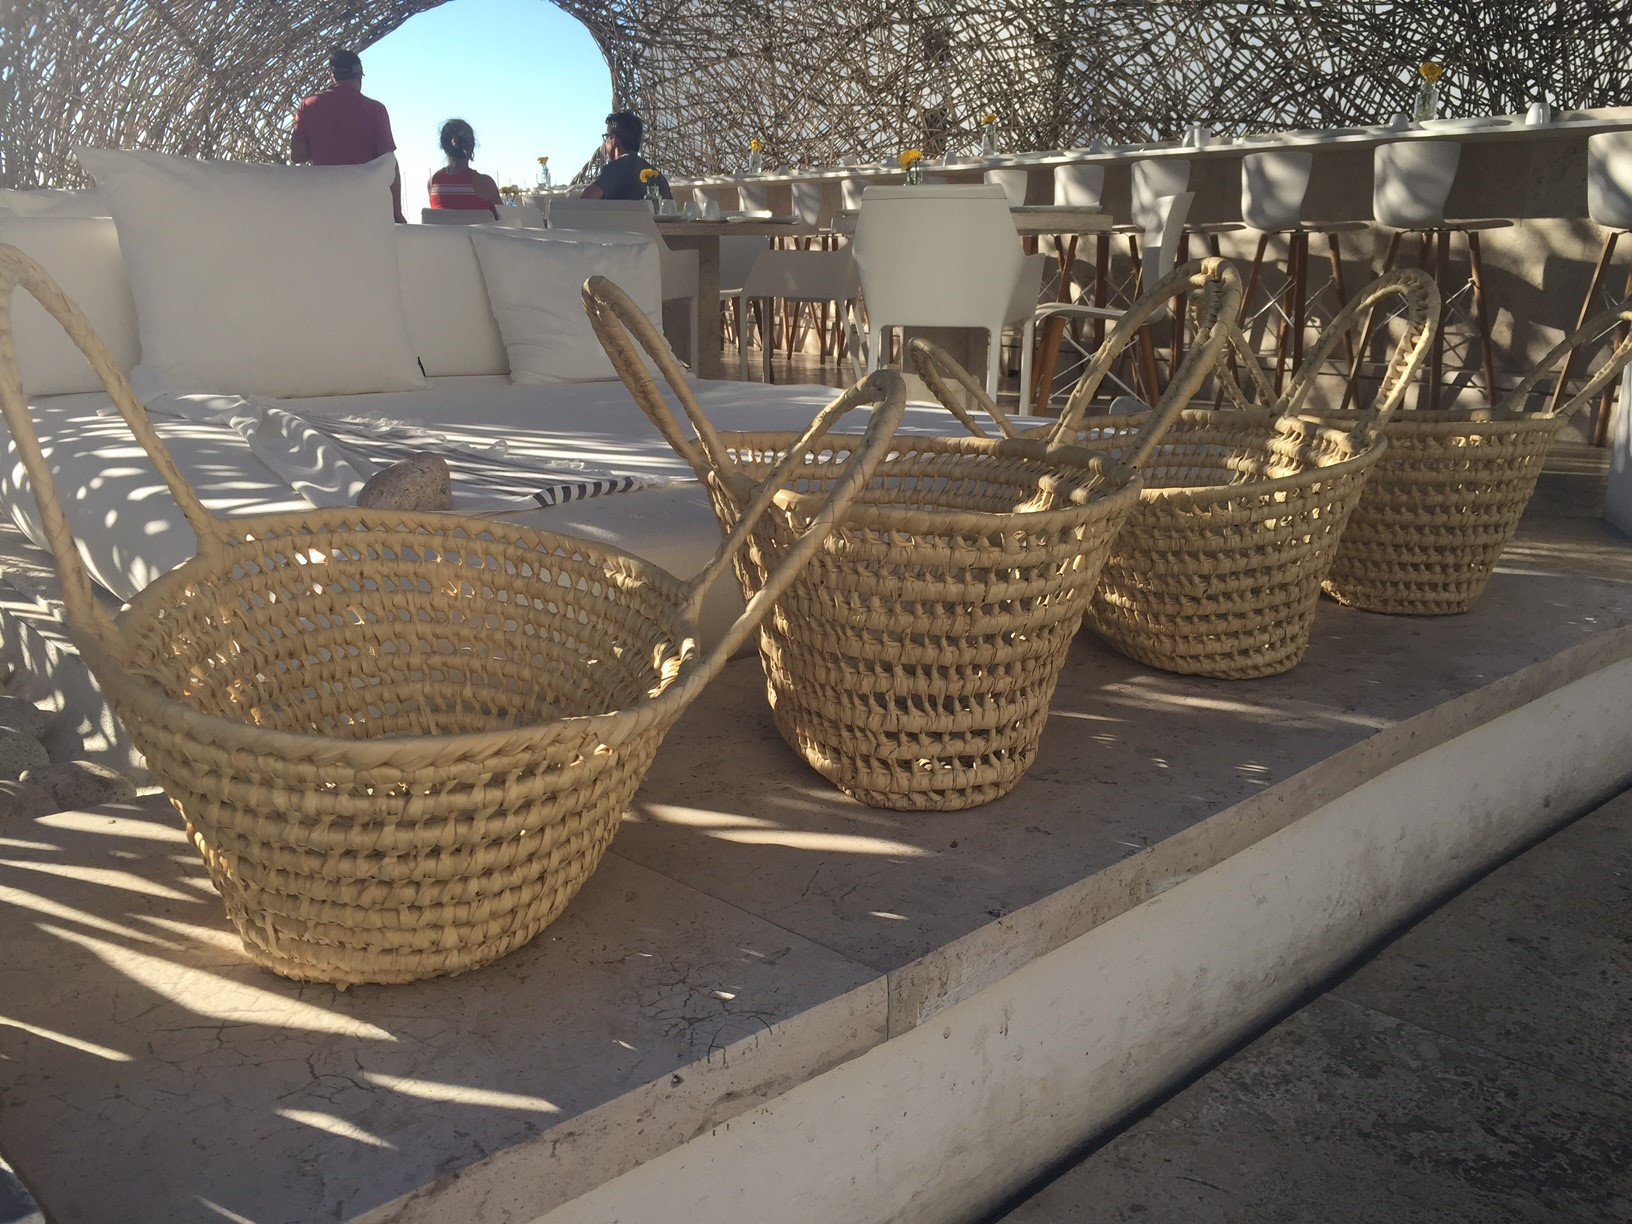 Inside the restaurant, artisan baskets line up mimicking the architecture.